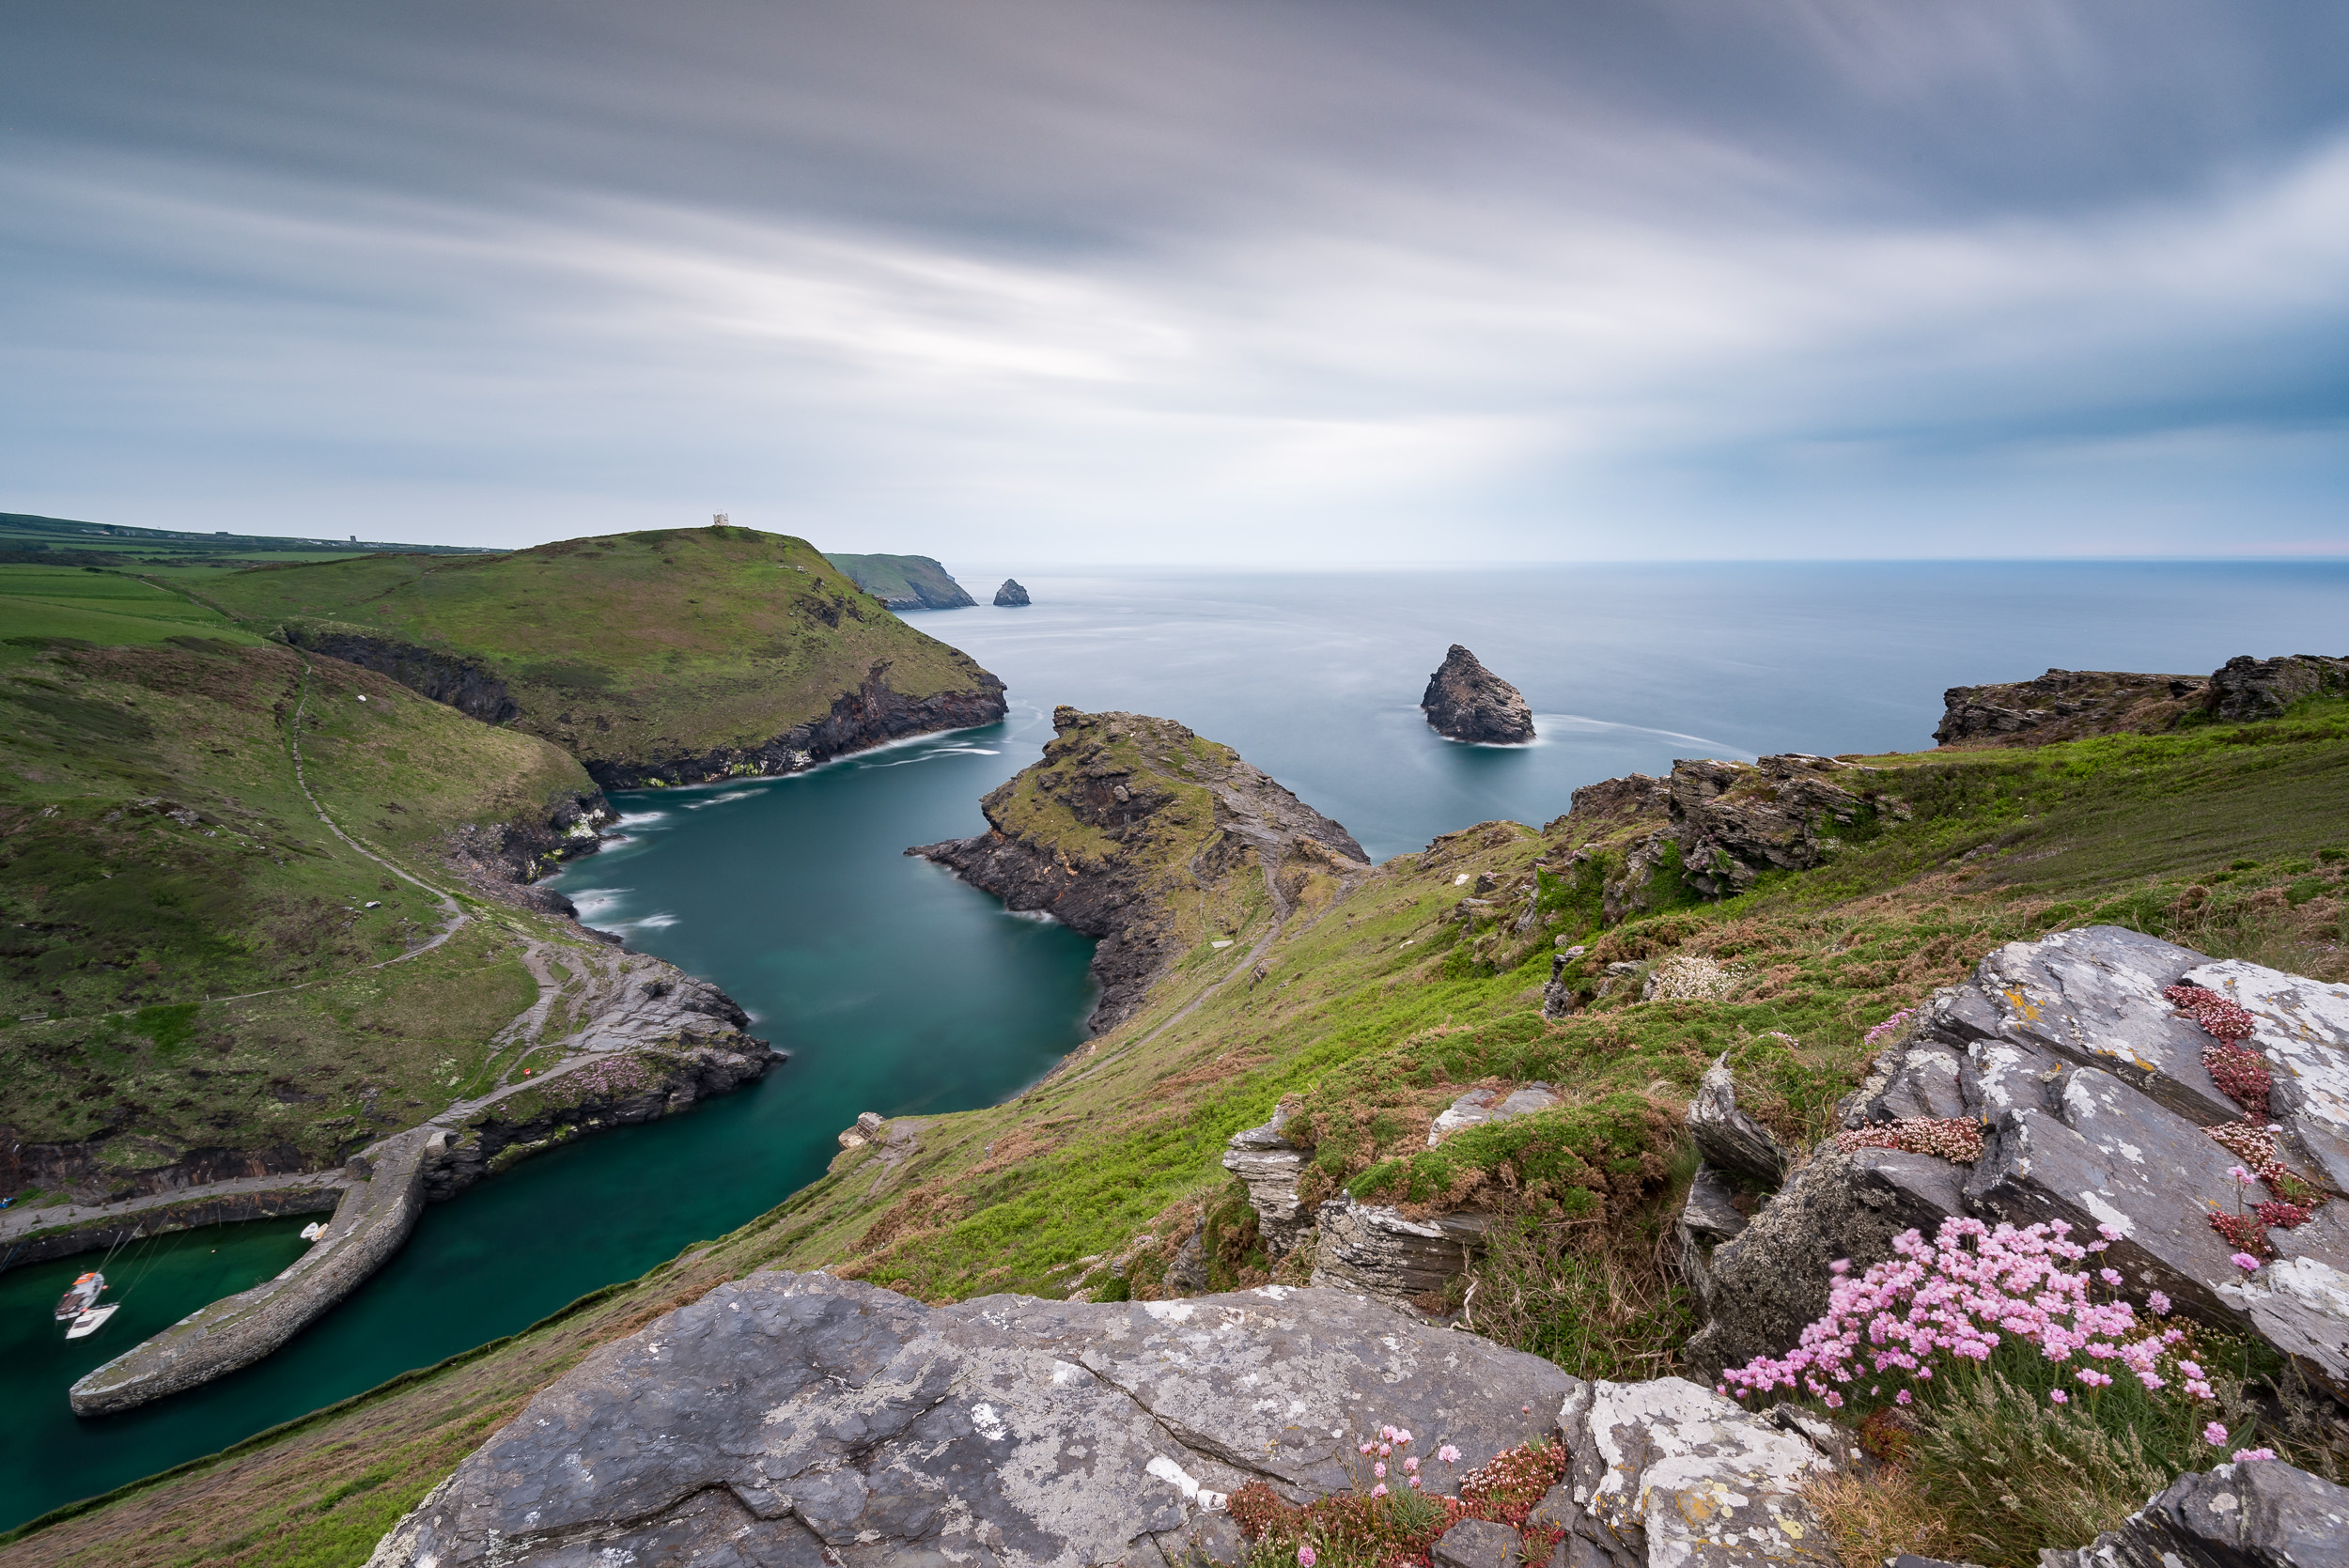 An image of Boscastle that I took in May 2016.